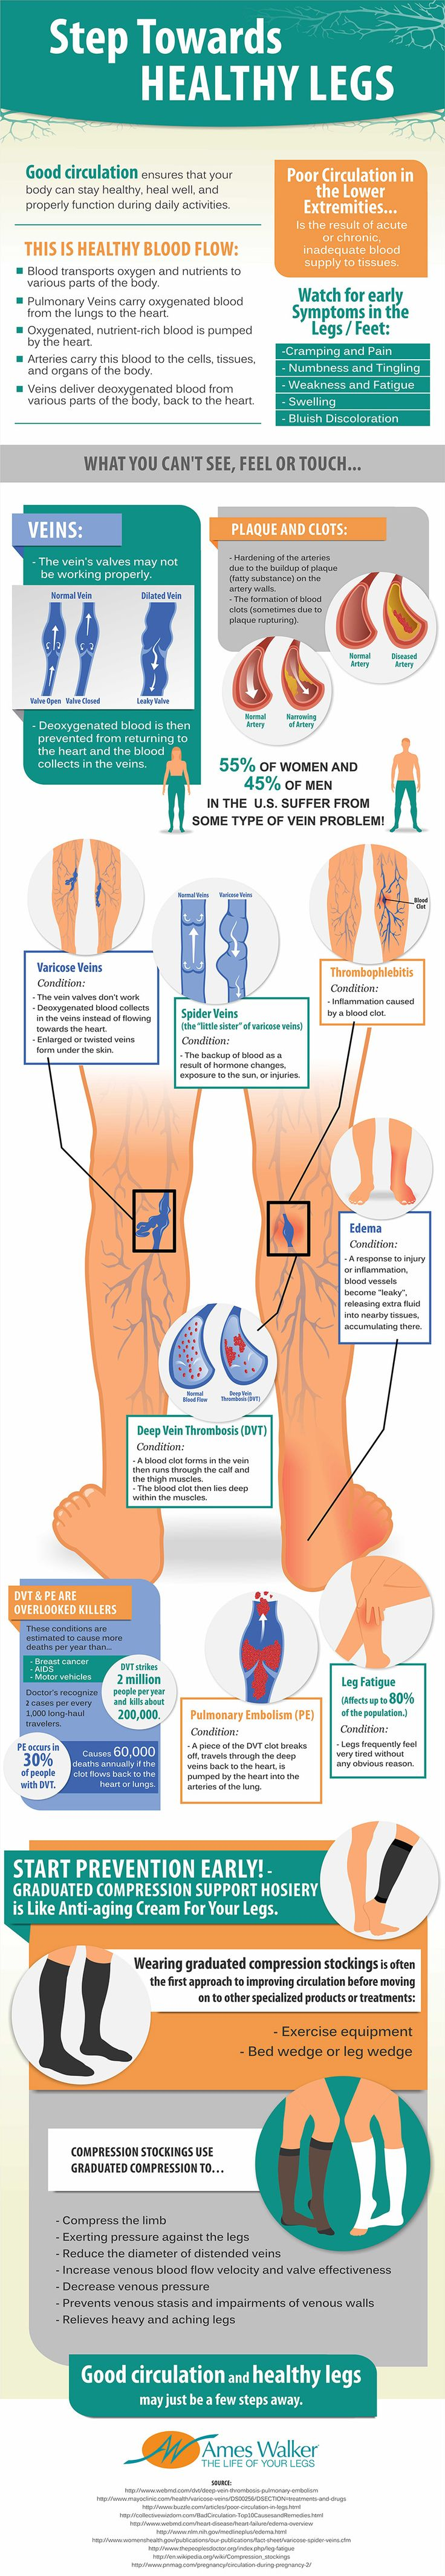 55% of women and 45% of men in the U.S. suffer from some type of vein problem!